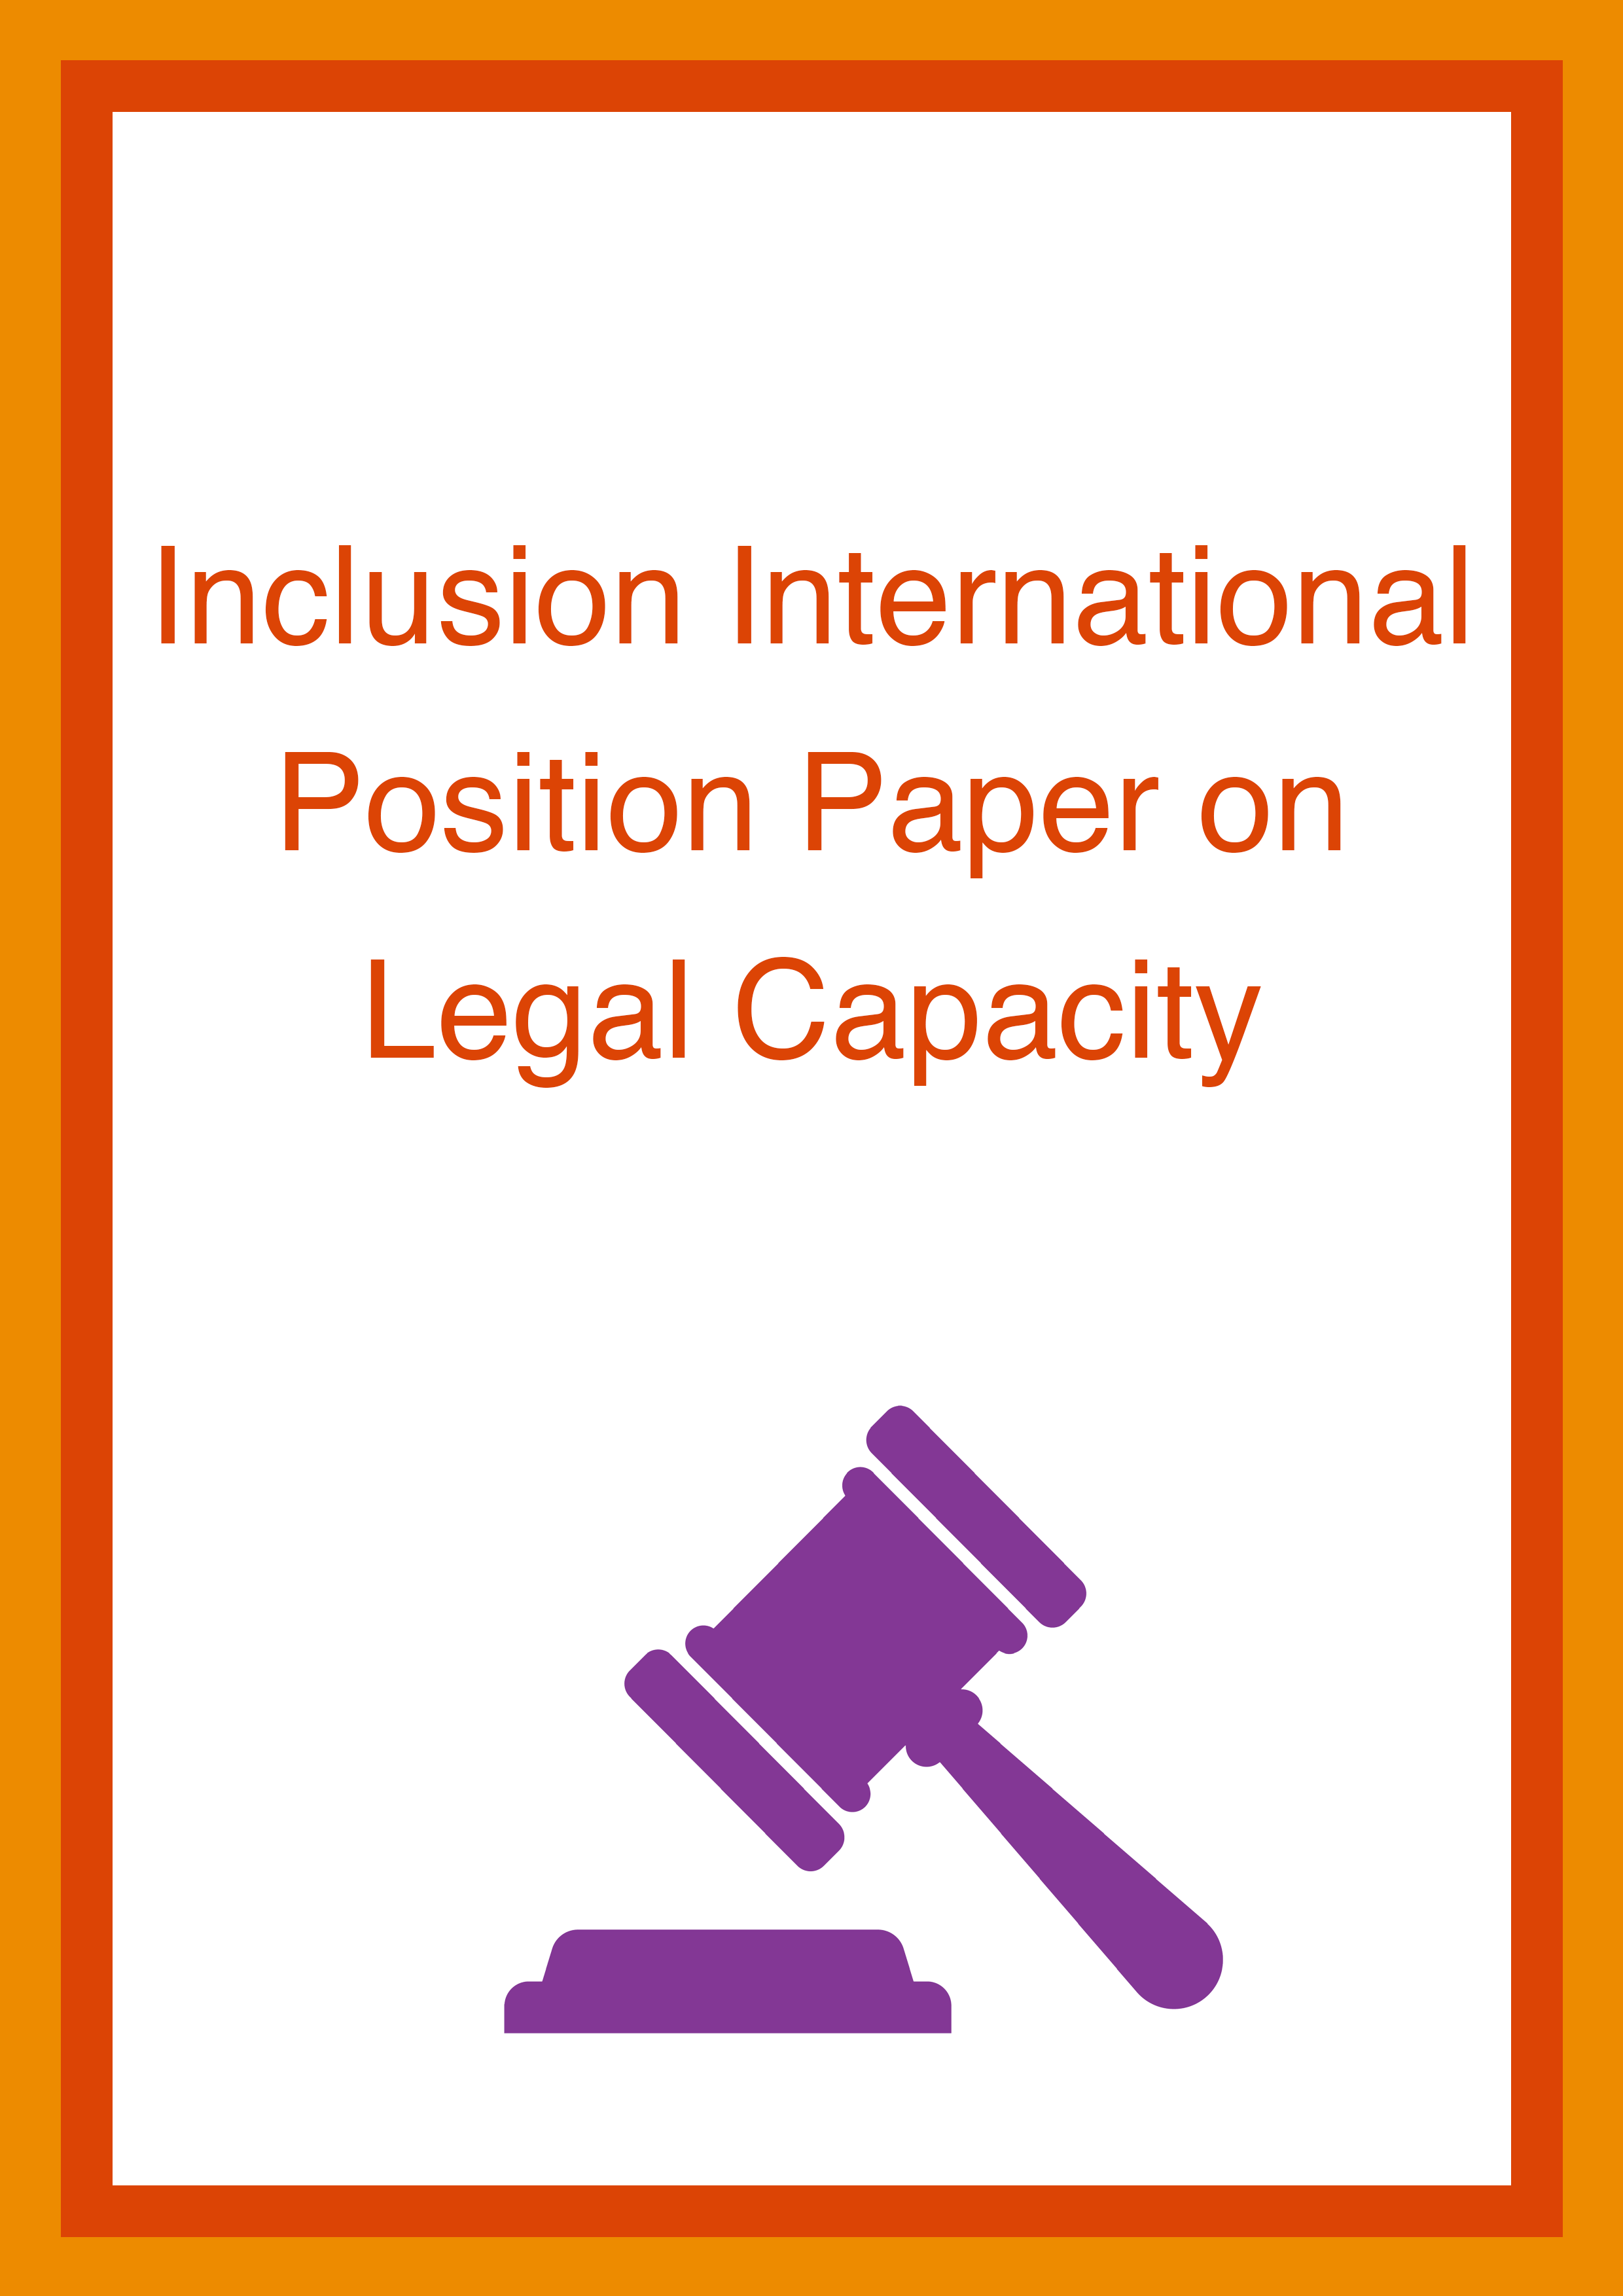 Cover art for: Inclusion International Position Paper on Legal Capacity